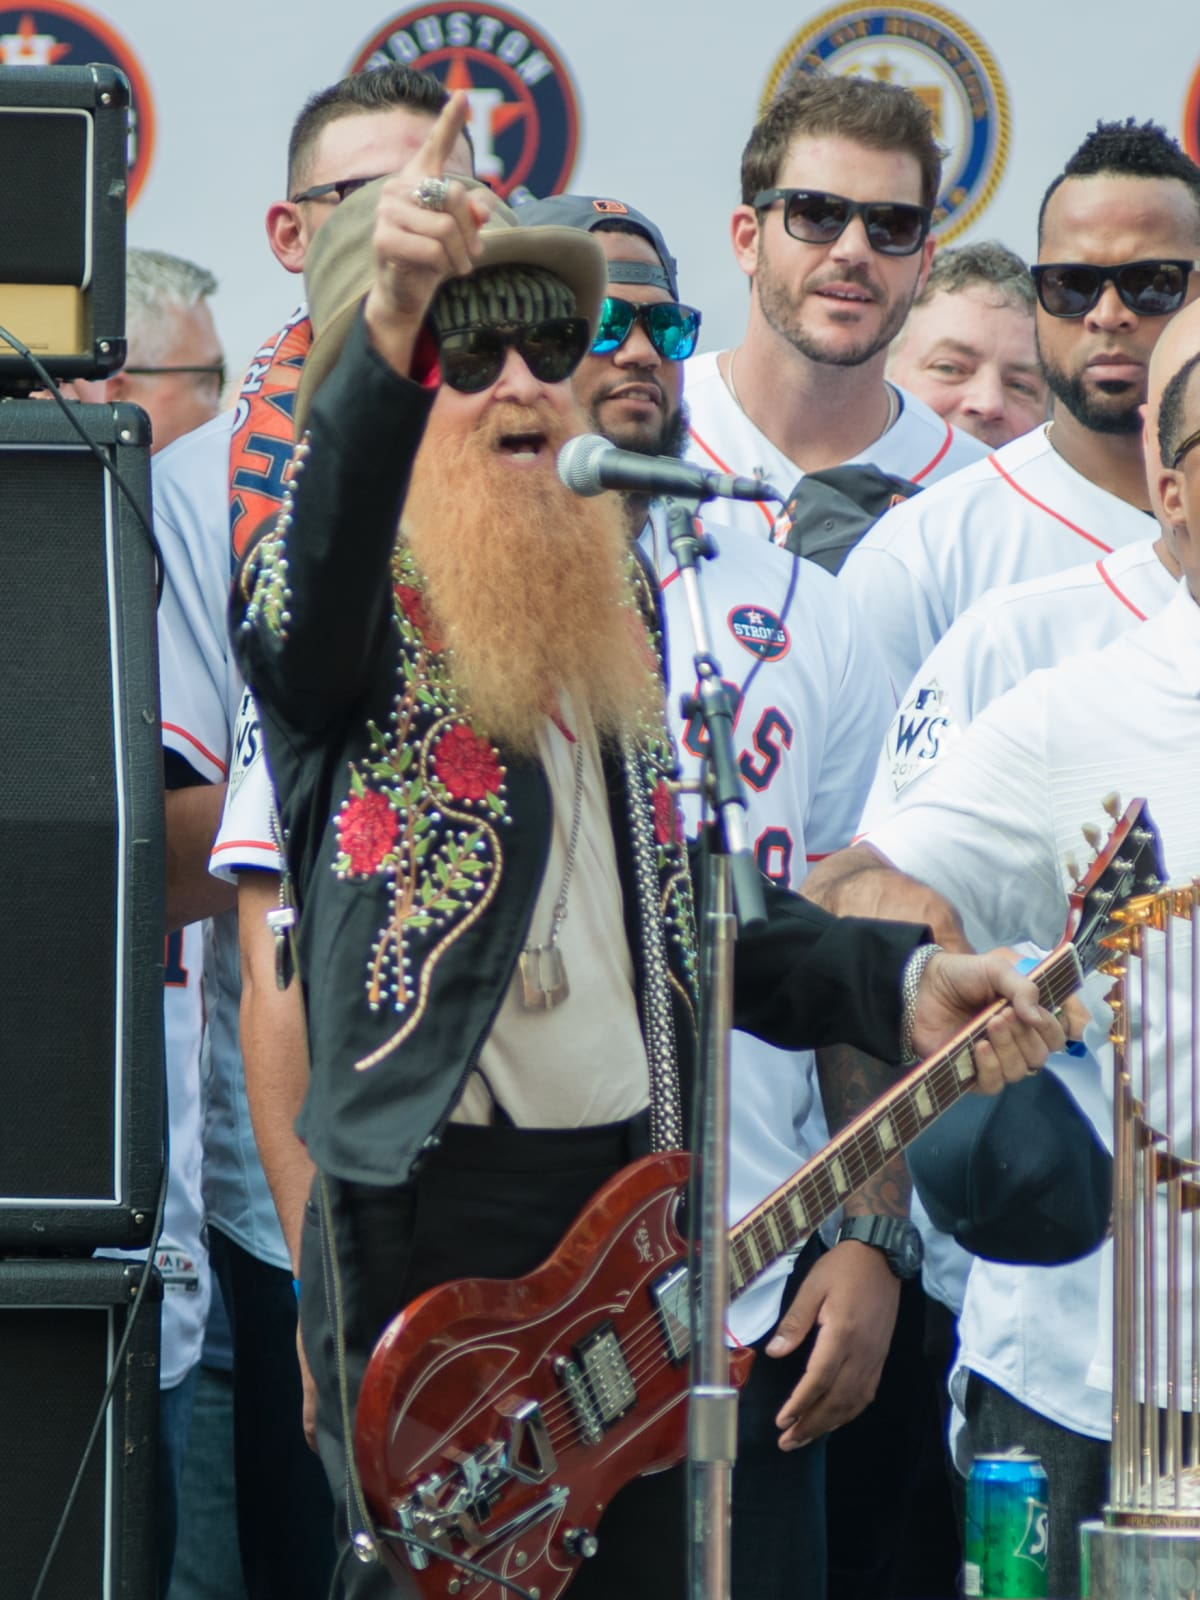 Astros World Series victory parade and rally, BIlly Gibbons